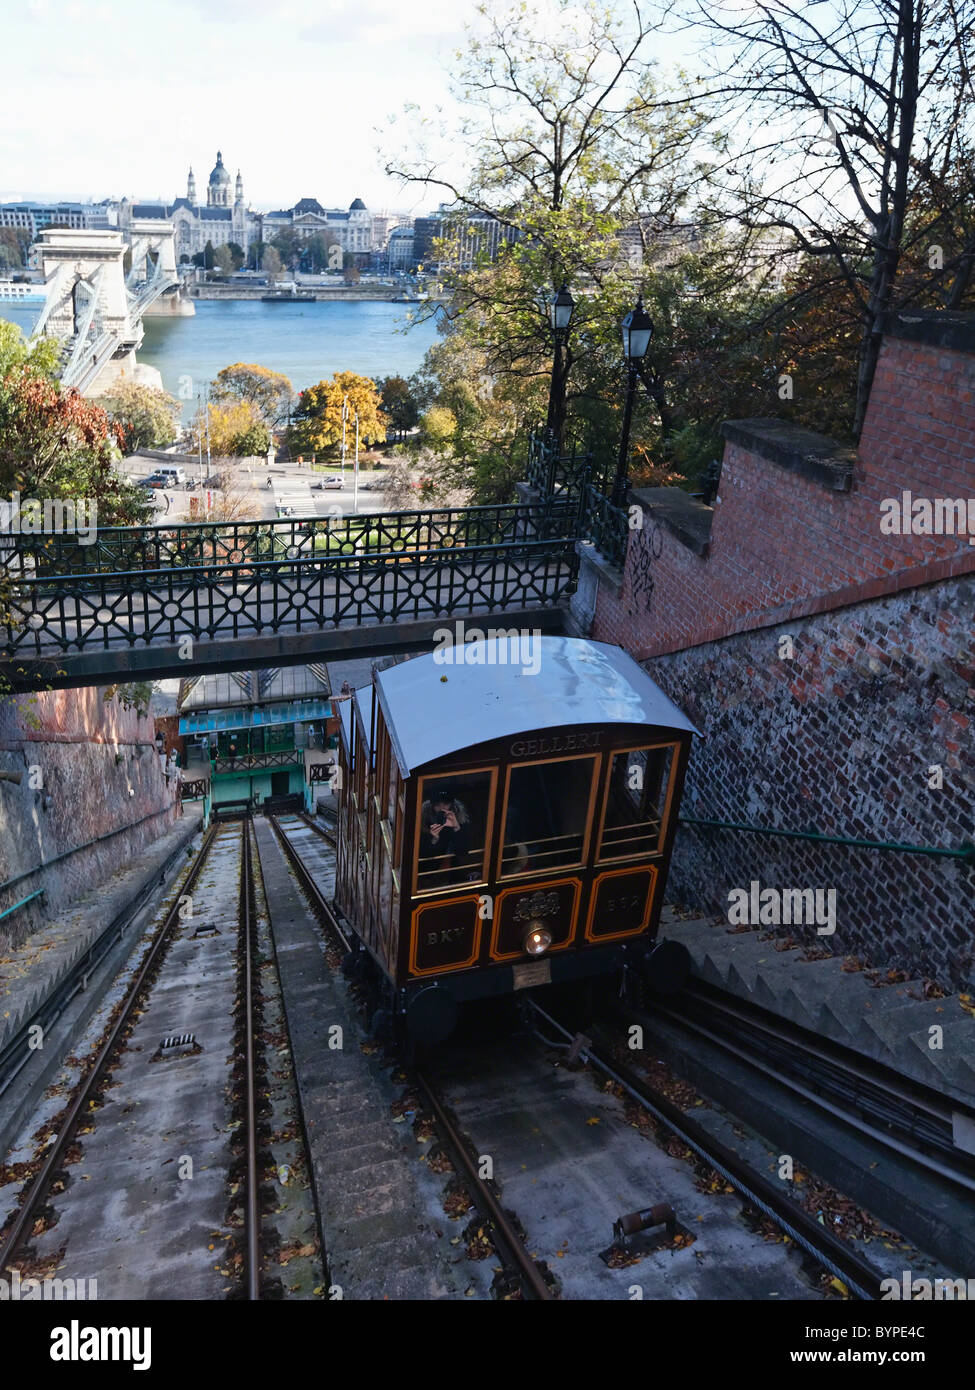 Budapest Castle Hill Funicular Car Ascending to Castle Hill, Hungary Stock Photo